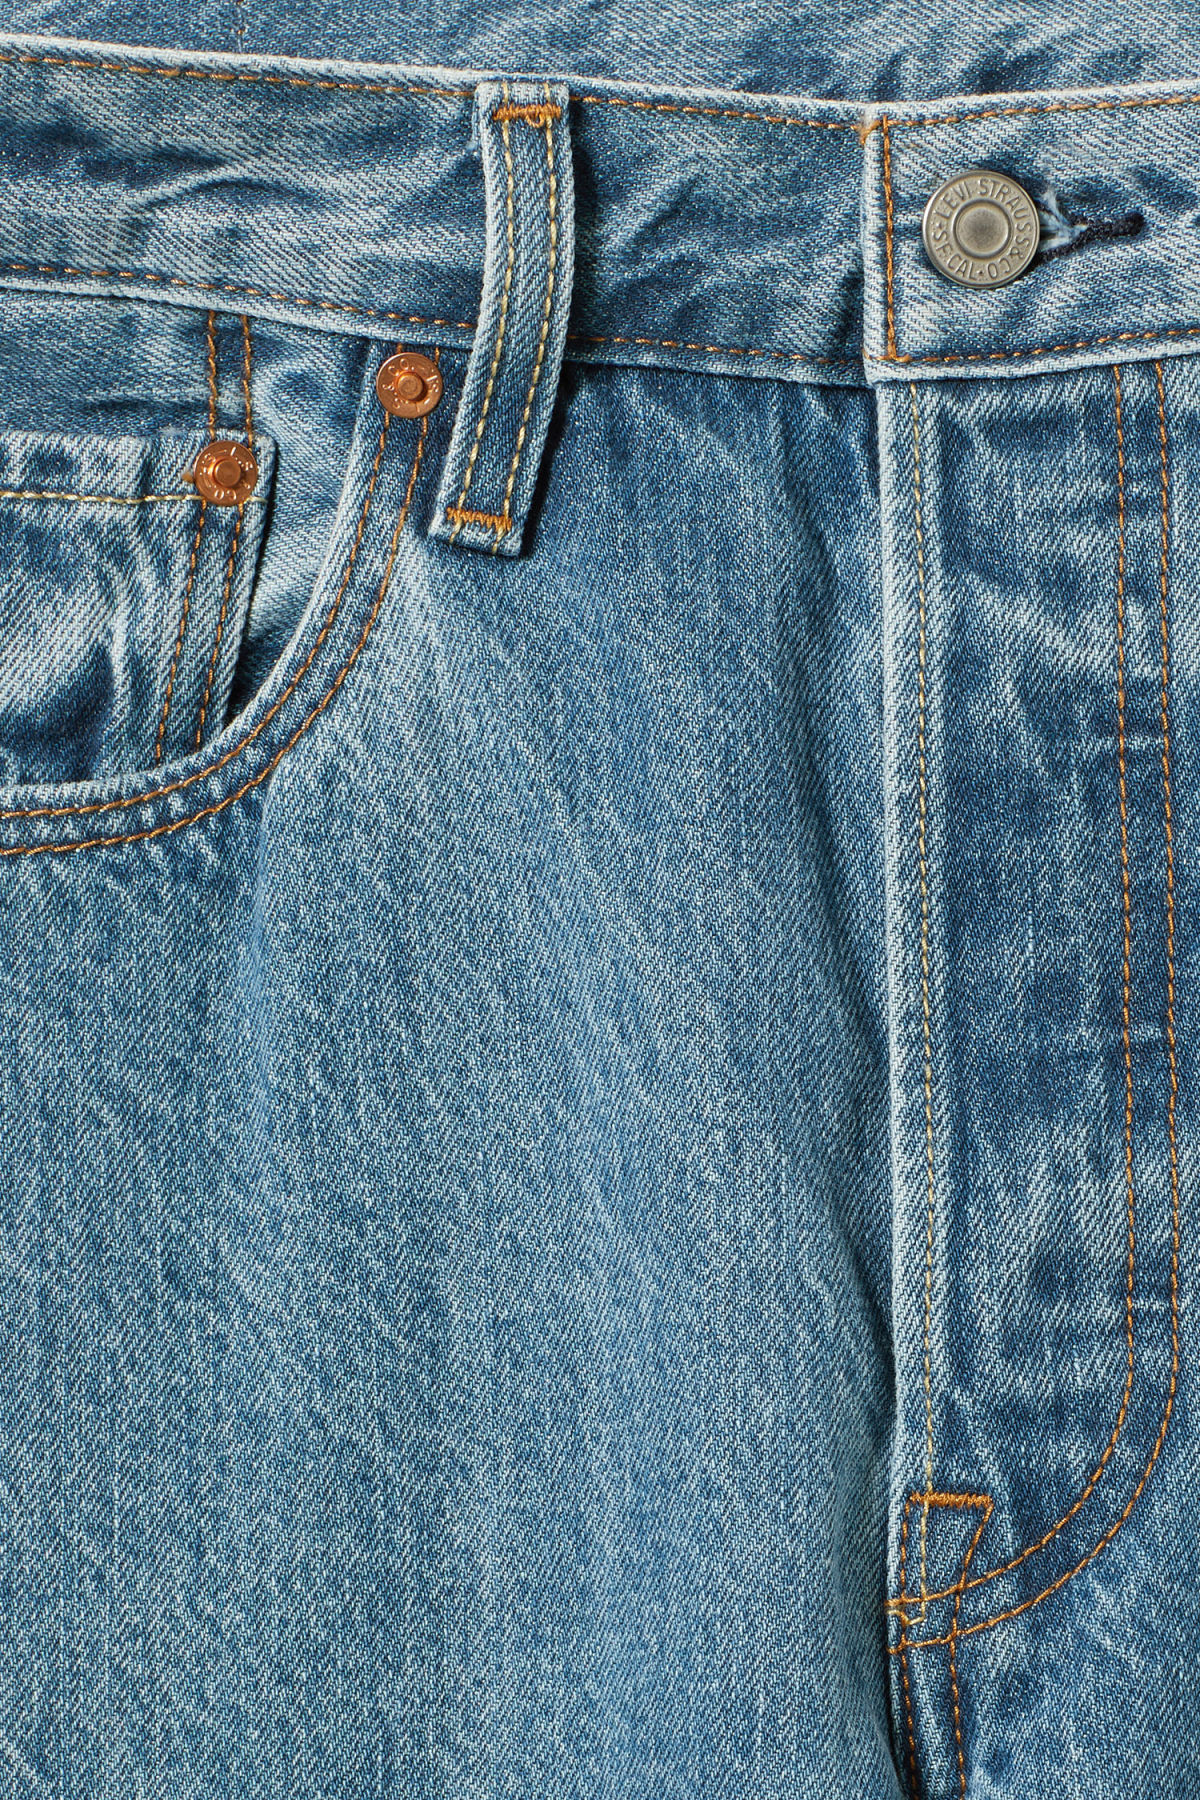 Detailed image of Weekday 501 skinny rolling dice jeans in blue